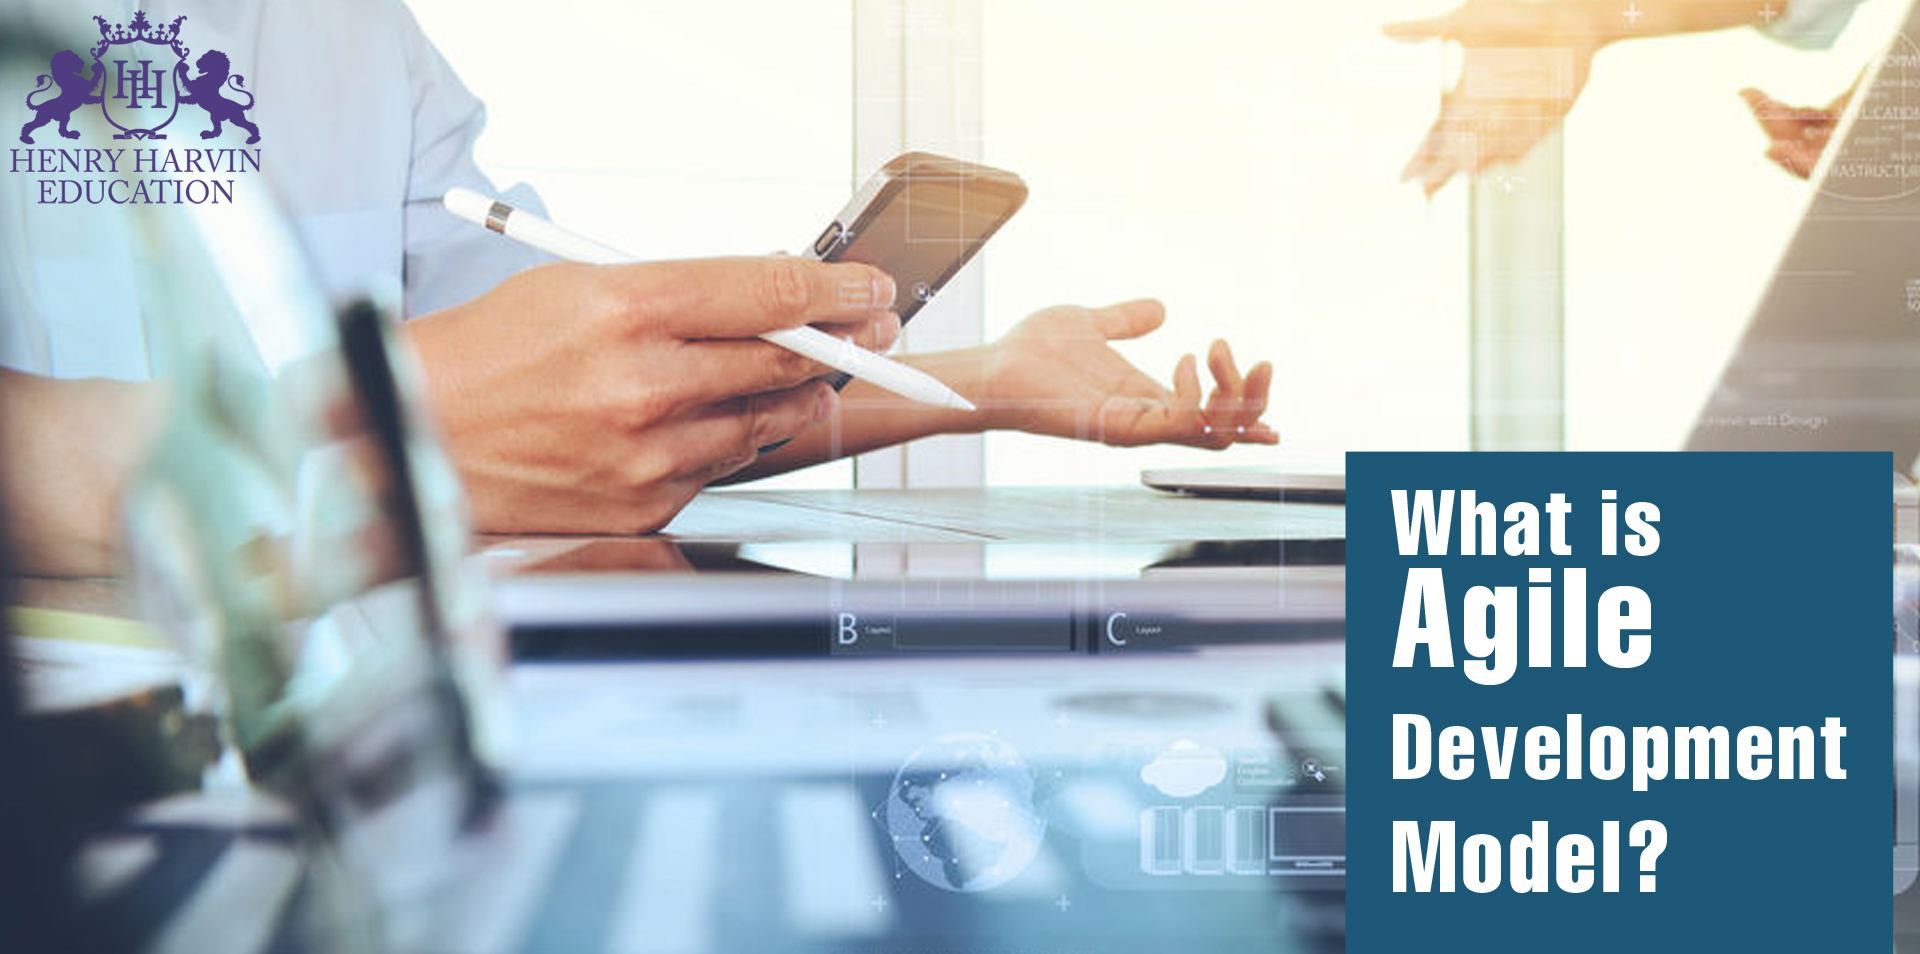 Agile Development Model | What is it, advantages and when to use it?